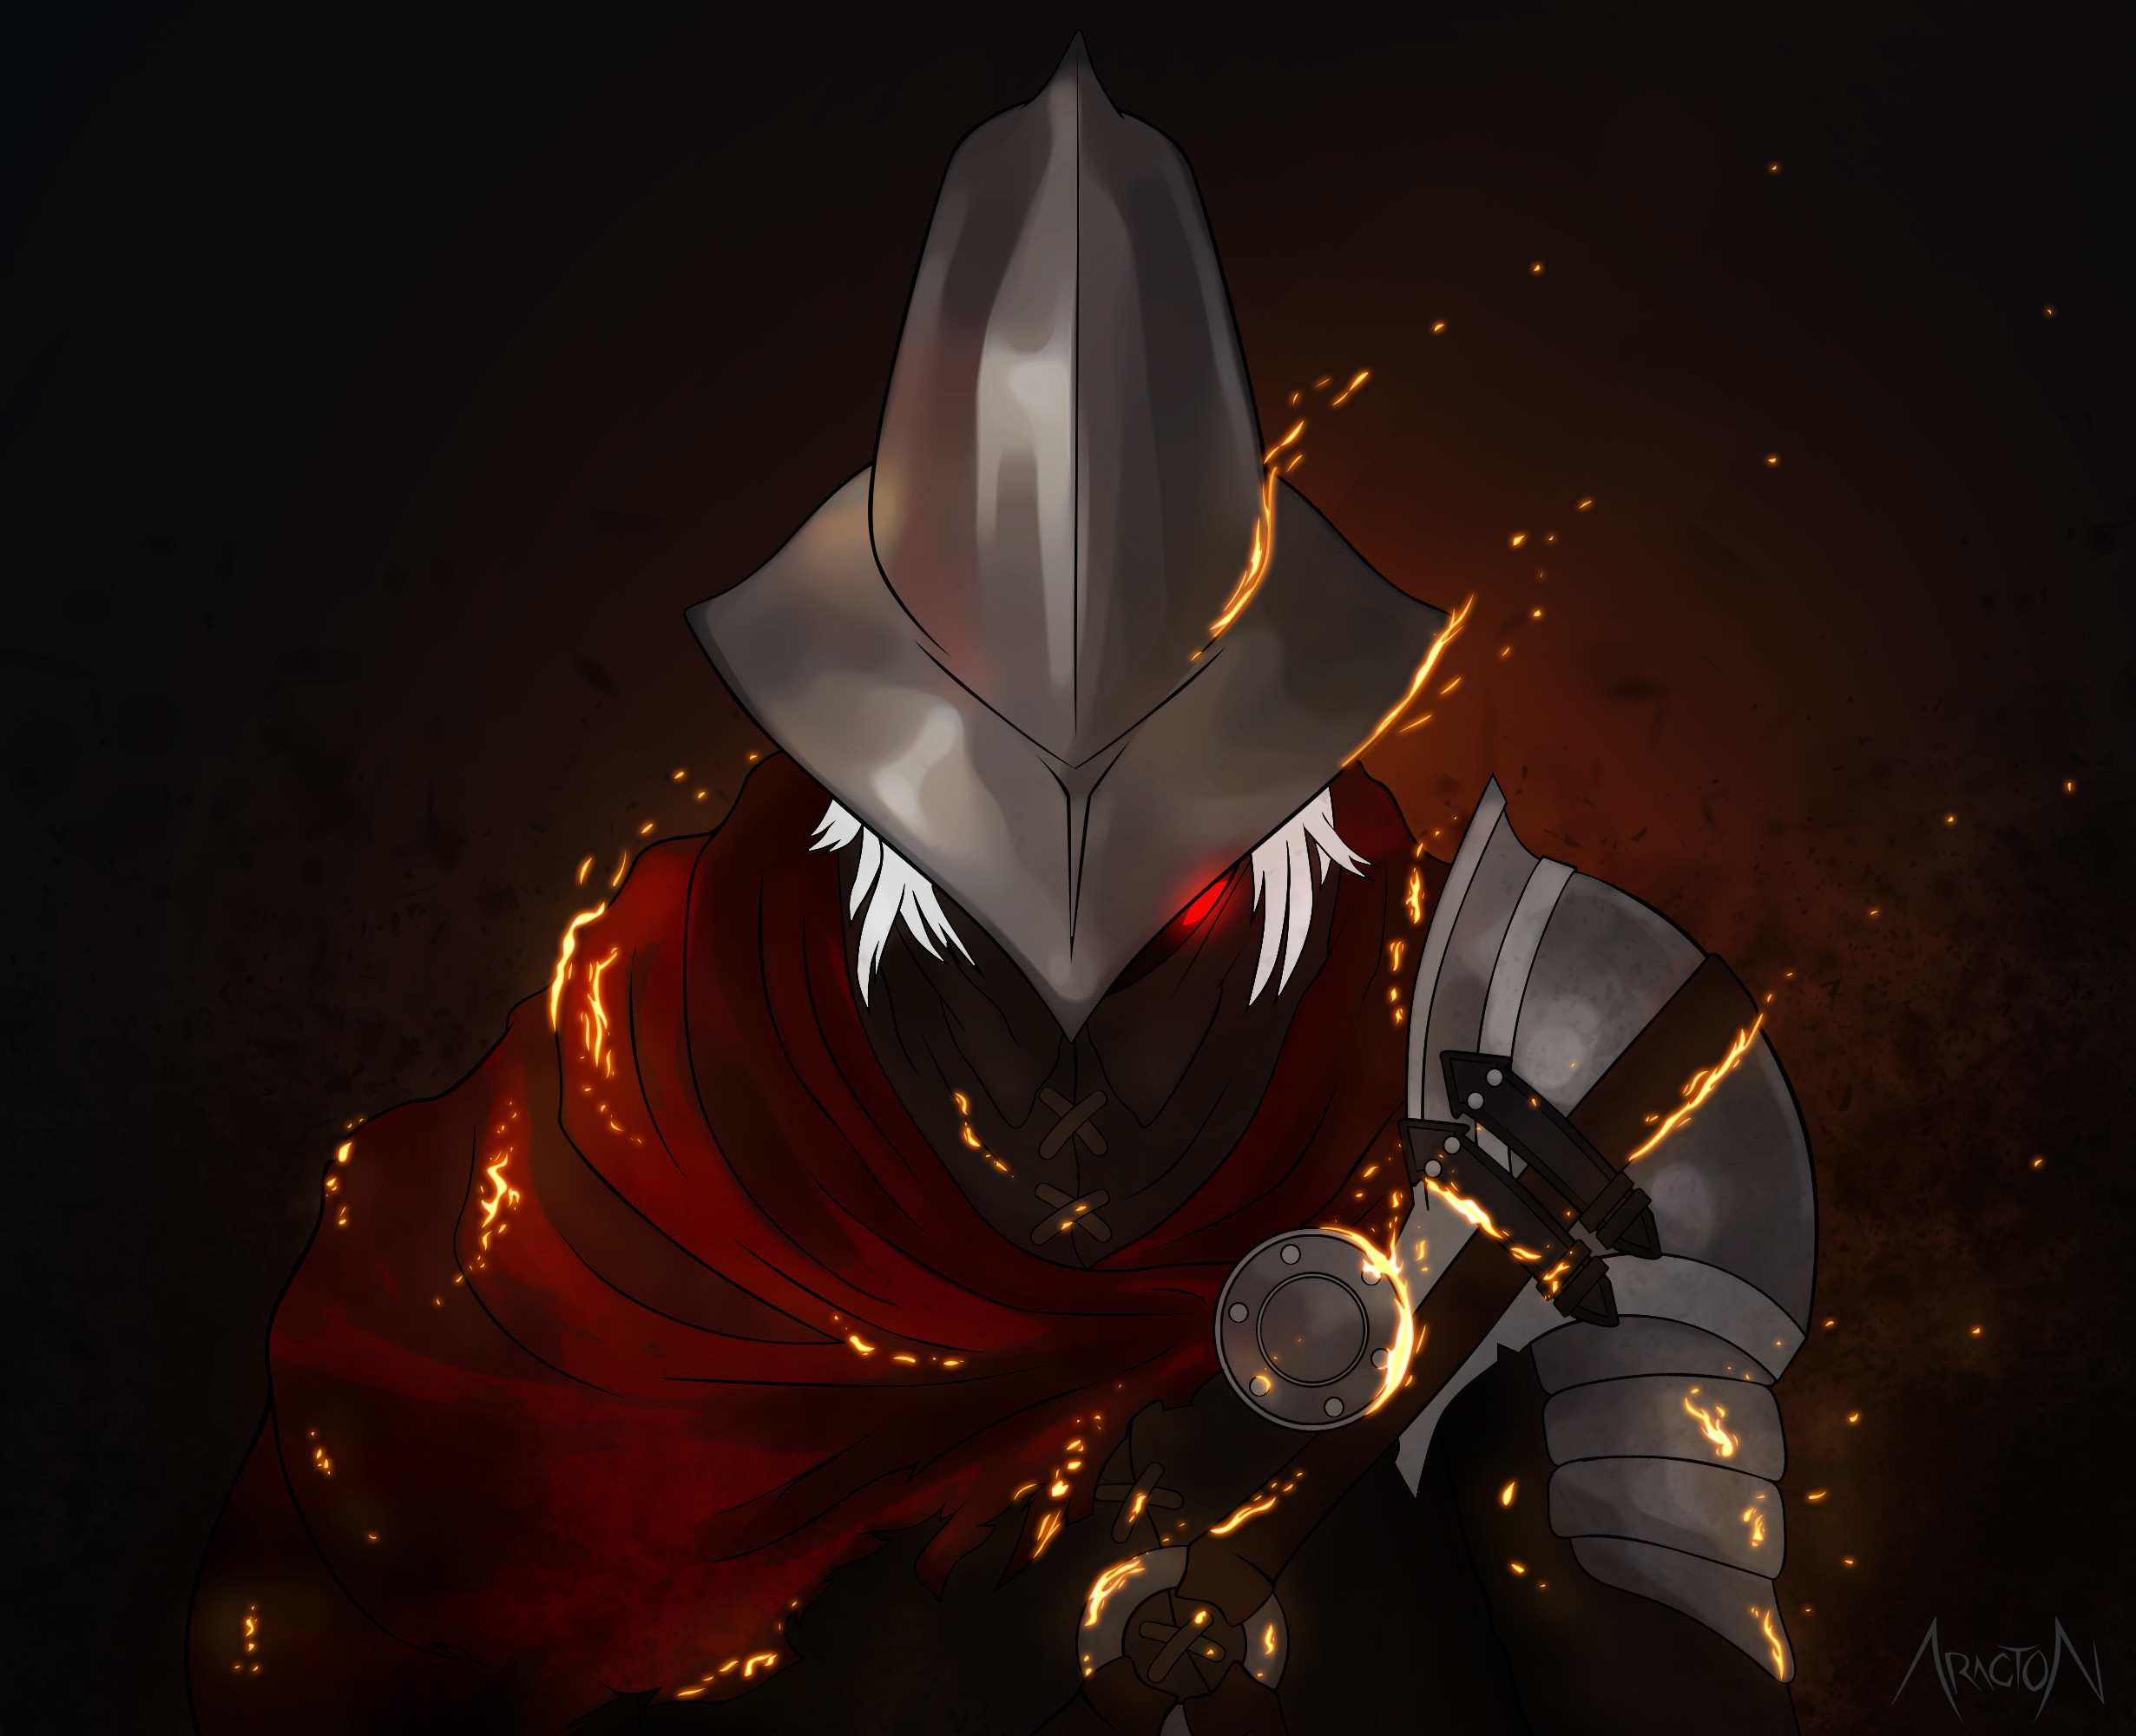 75 Abyss Watchers Android Iphone Desktop Hd Backgrounds Wallpapers 1080p 4k 2461x2000 2020